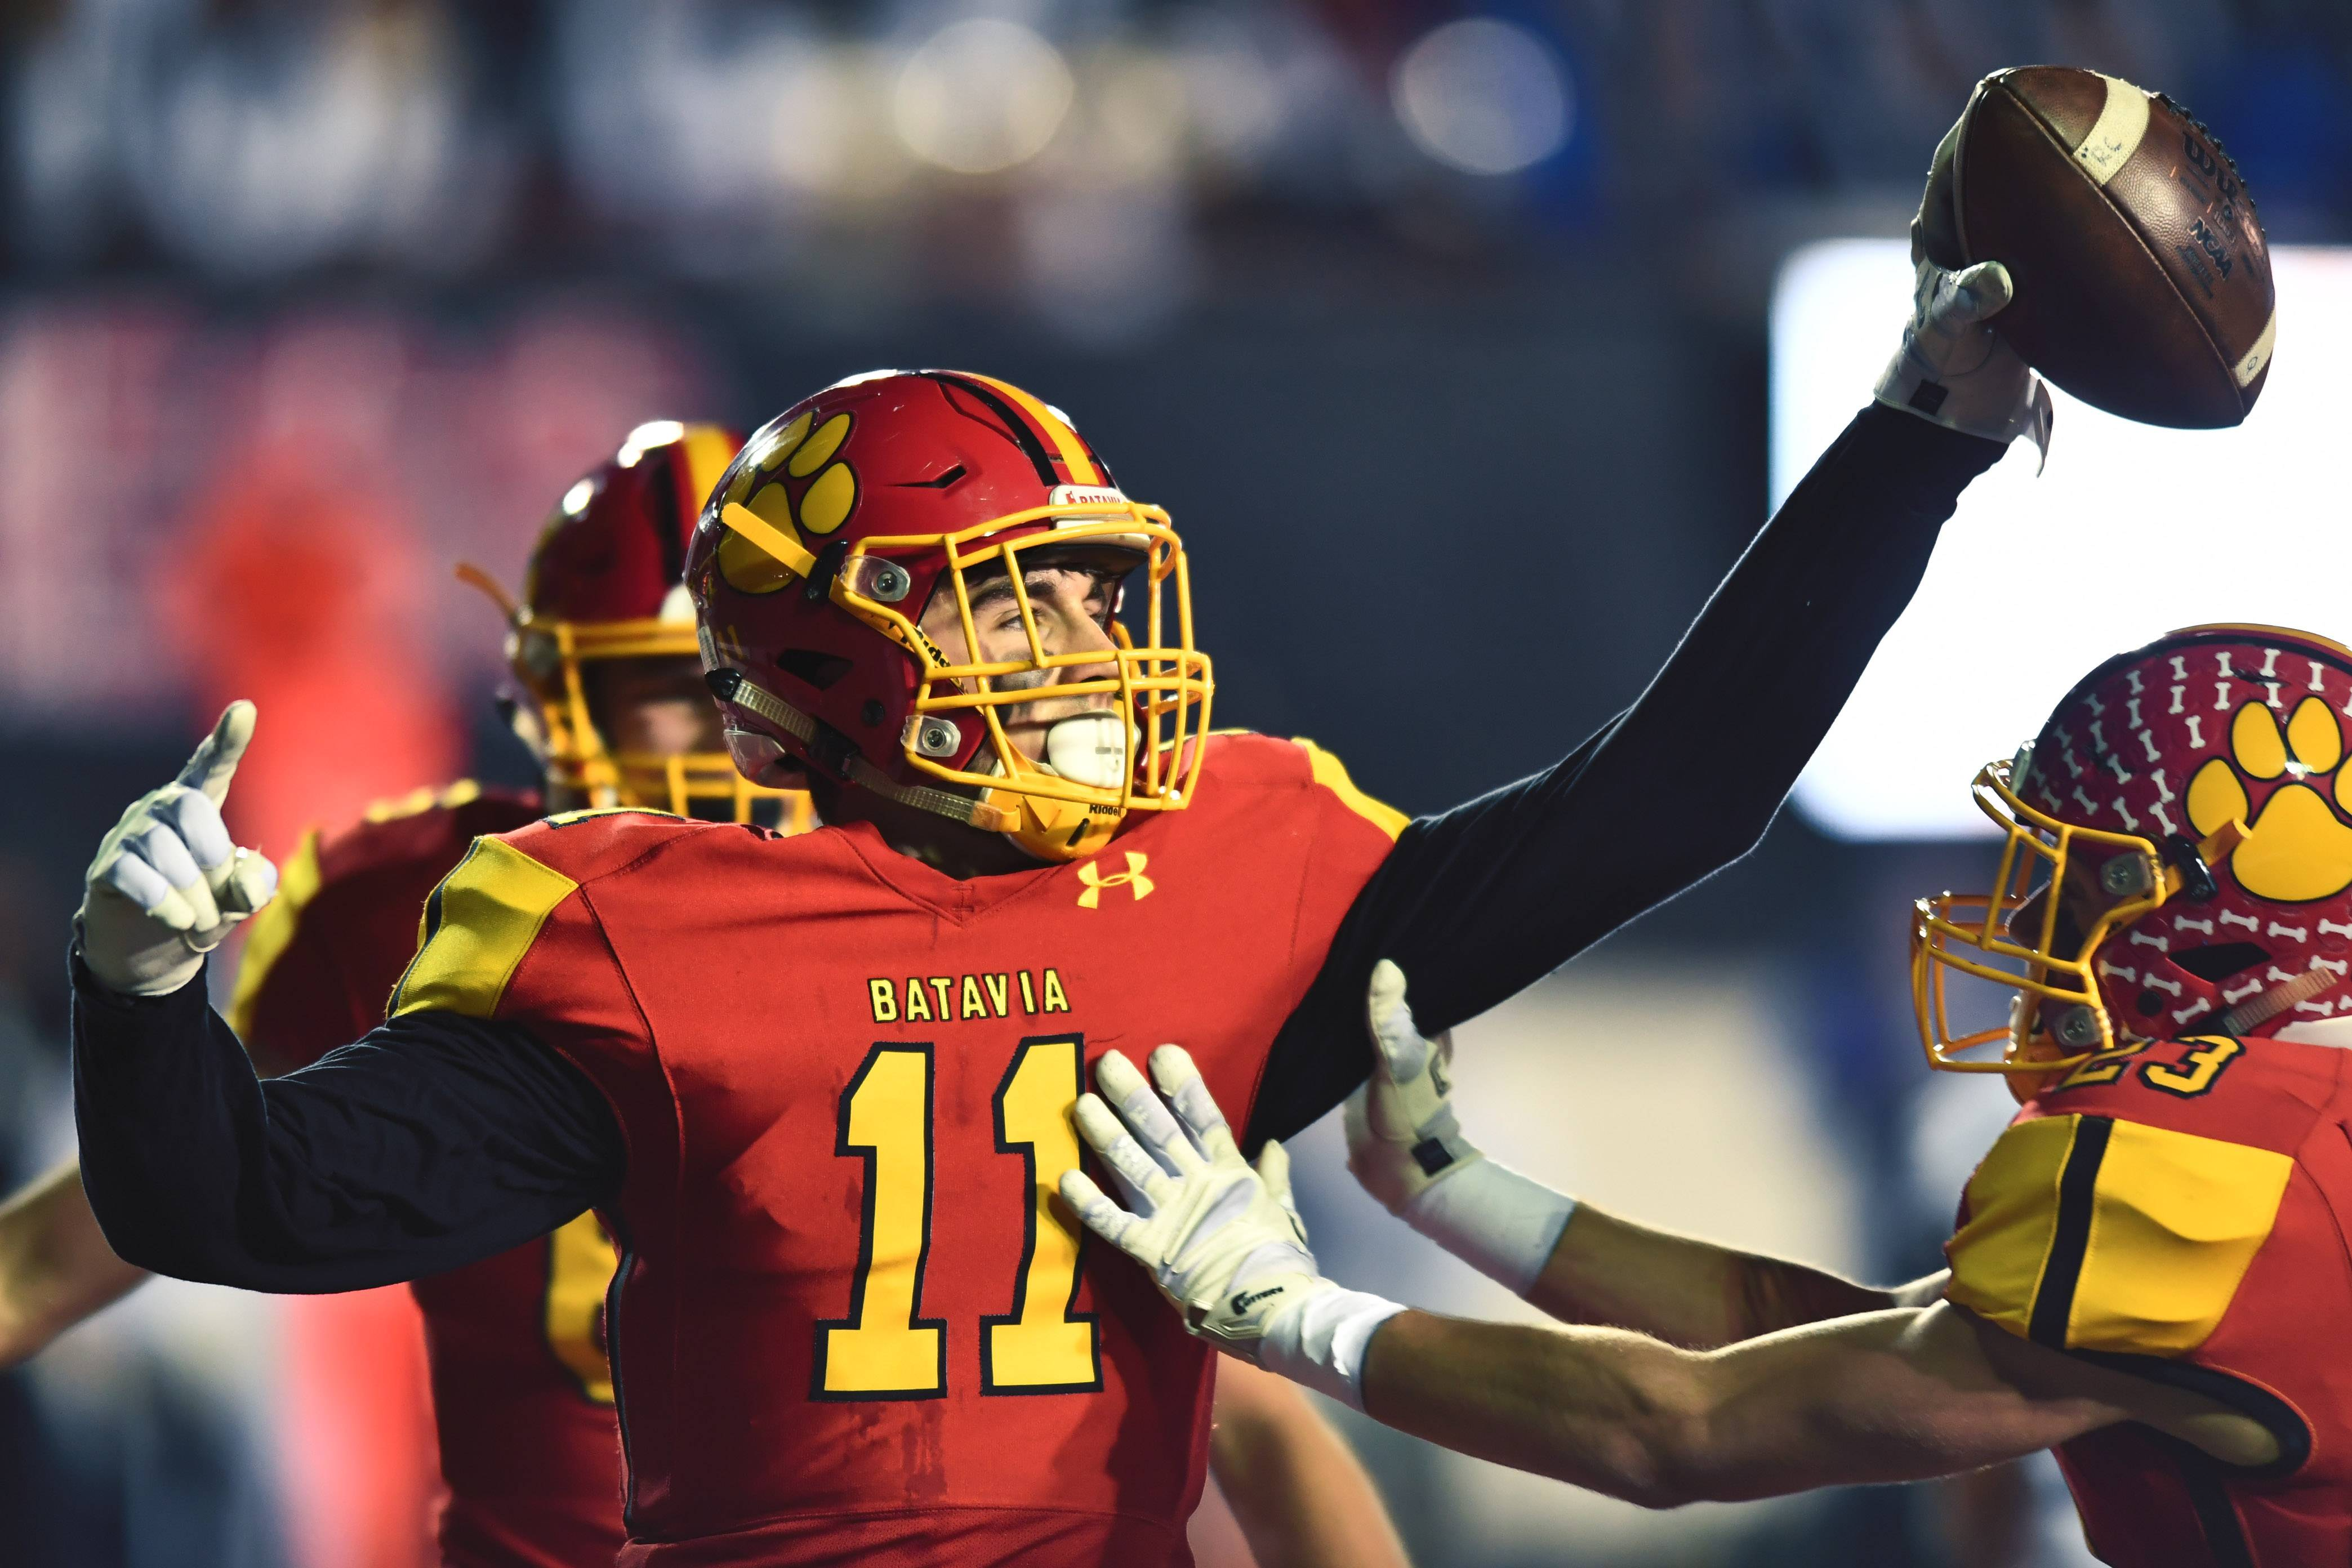 Batavia Defeats Lake Zurich In Ot Thriller For Class 7a State